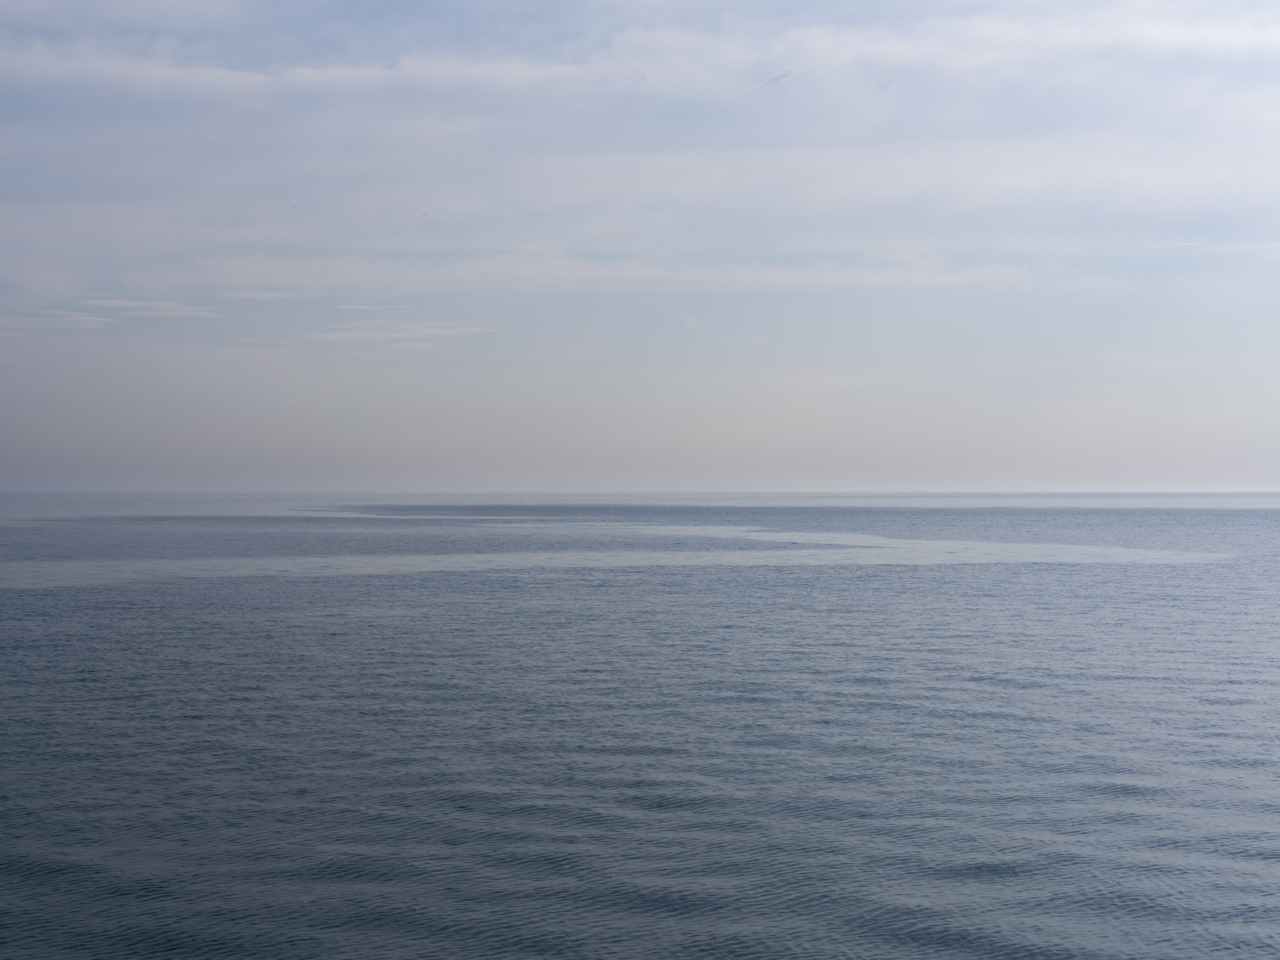 blue overcast sky and an almost entirely still Lake Michigan